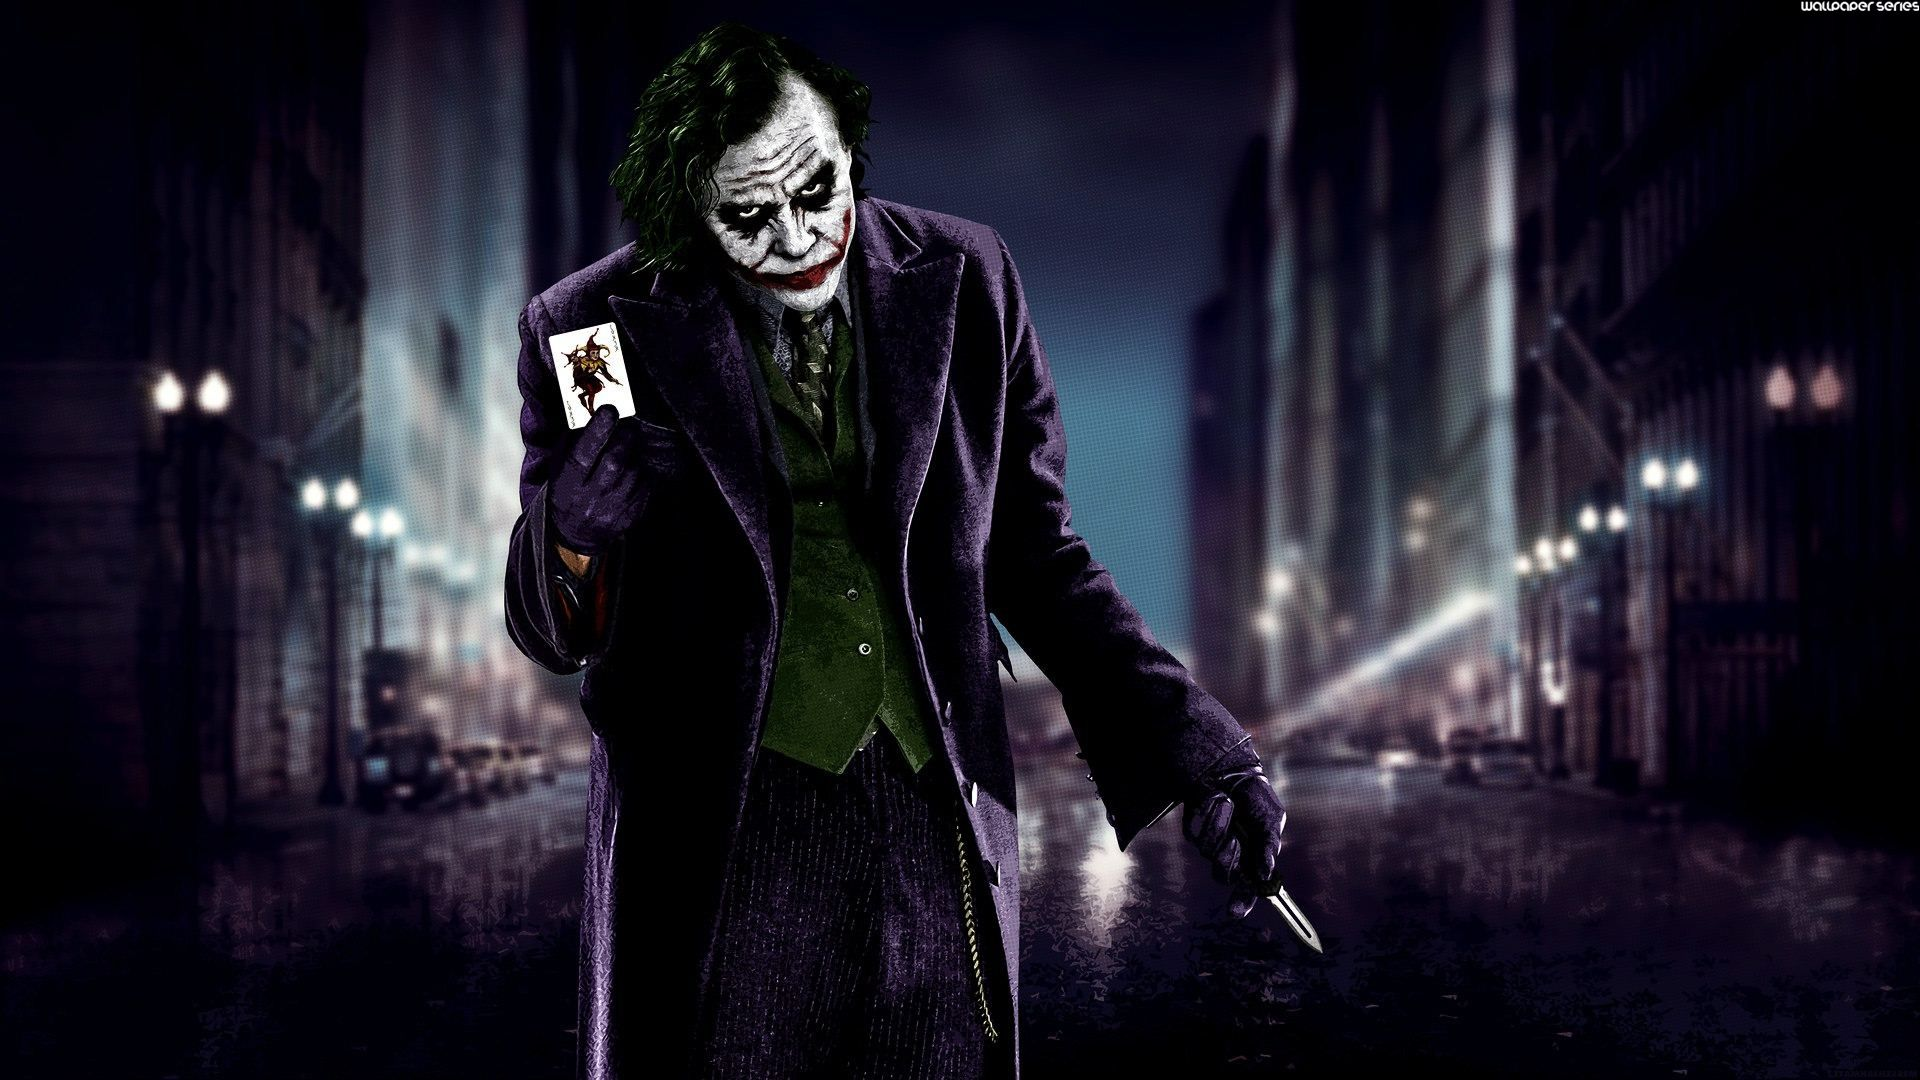 Heath Ledger Wallpapers High Resolution and Quality Download 1920x1080